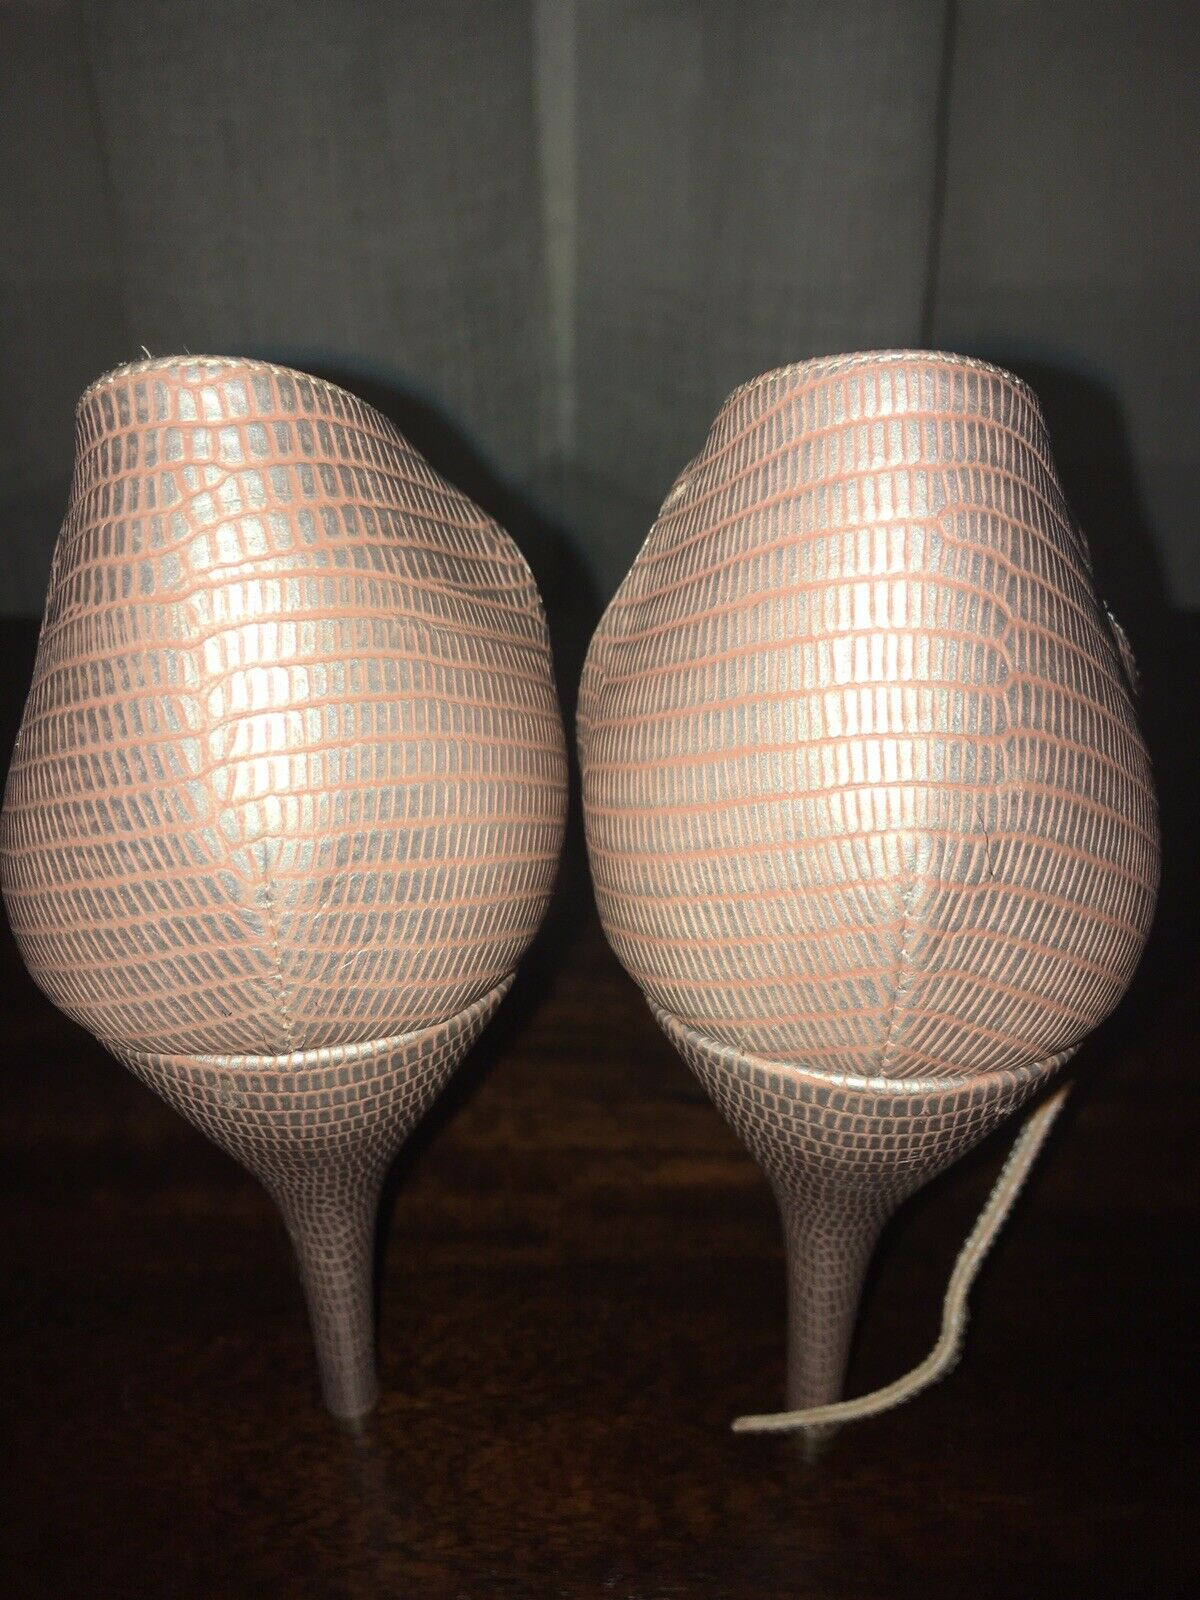 Escada Lizard Lizard Lizard Skin Pump Size 37.5 In Light Pink color Retail Price 675.00 ad51aa